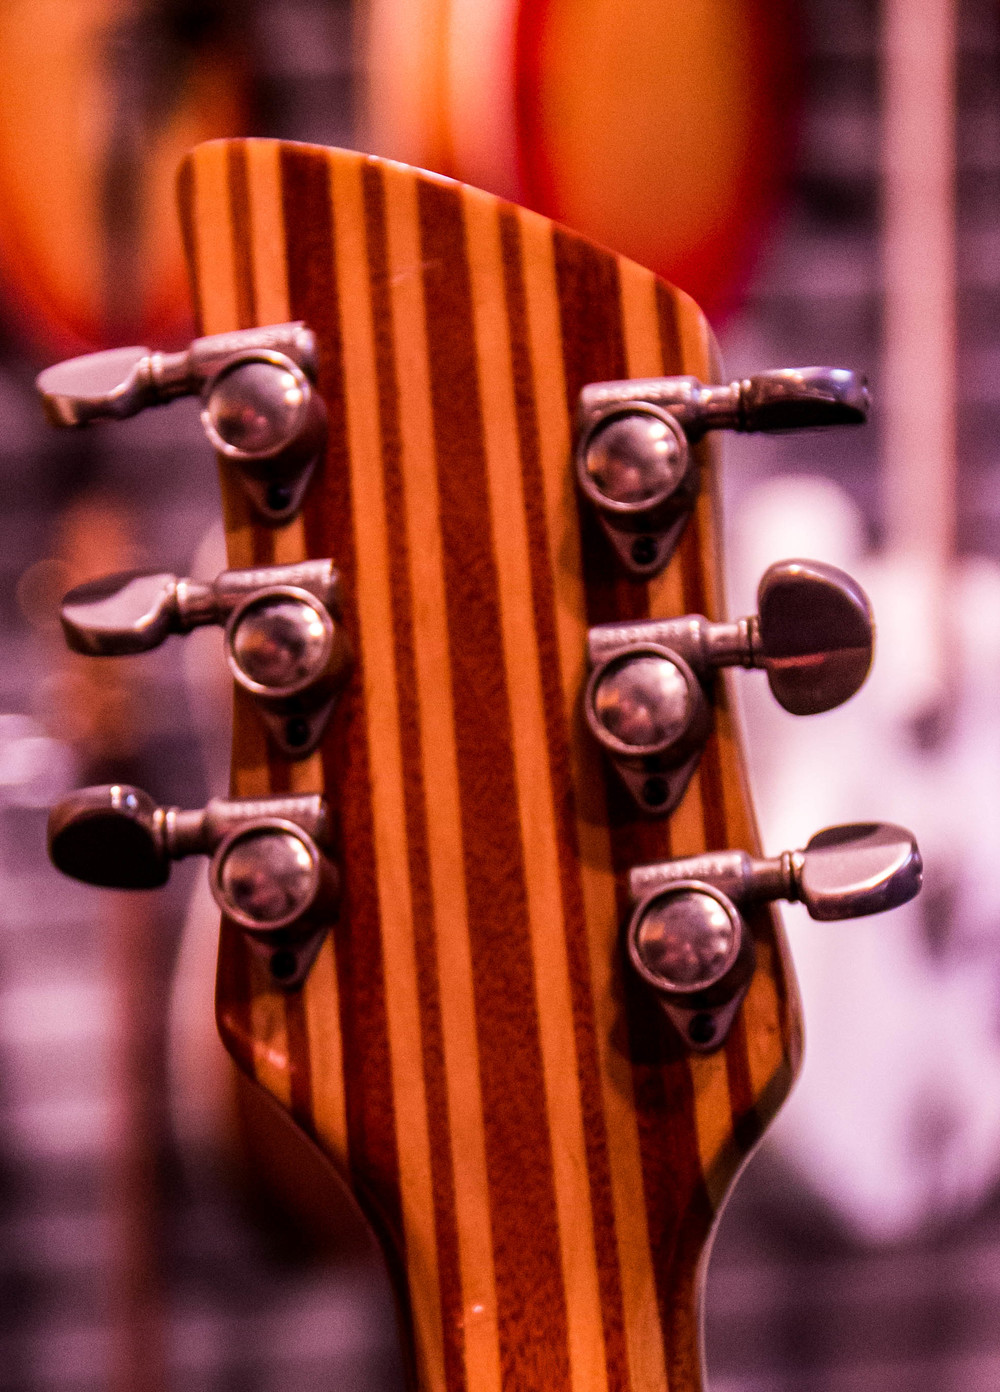 It took many strips of wood (laminates) to create this stunning neck and headstock.